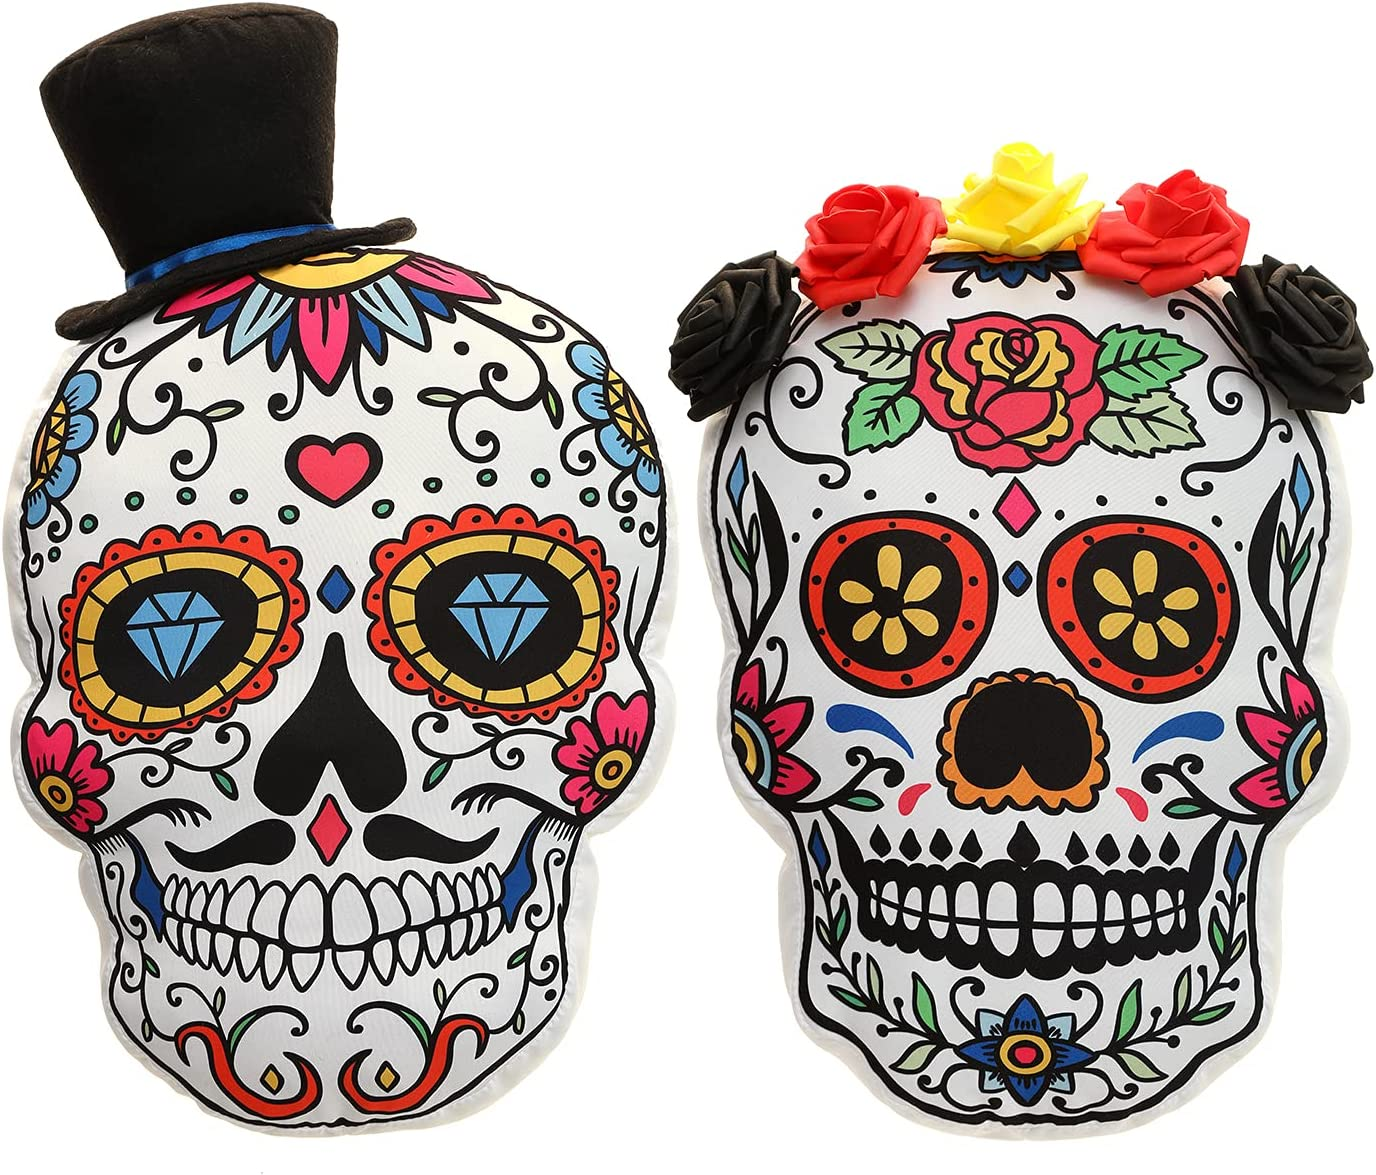 Halloween Throw Pillows Sugar Skull Couples Gifts The Day of The Dead Gothic Decor Halloween Decorations Throw Pillows for Couch Sofa Collection Scary 3D Shaped Cushion